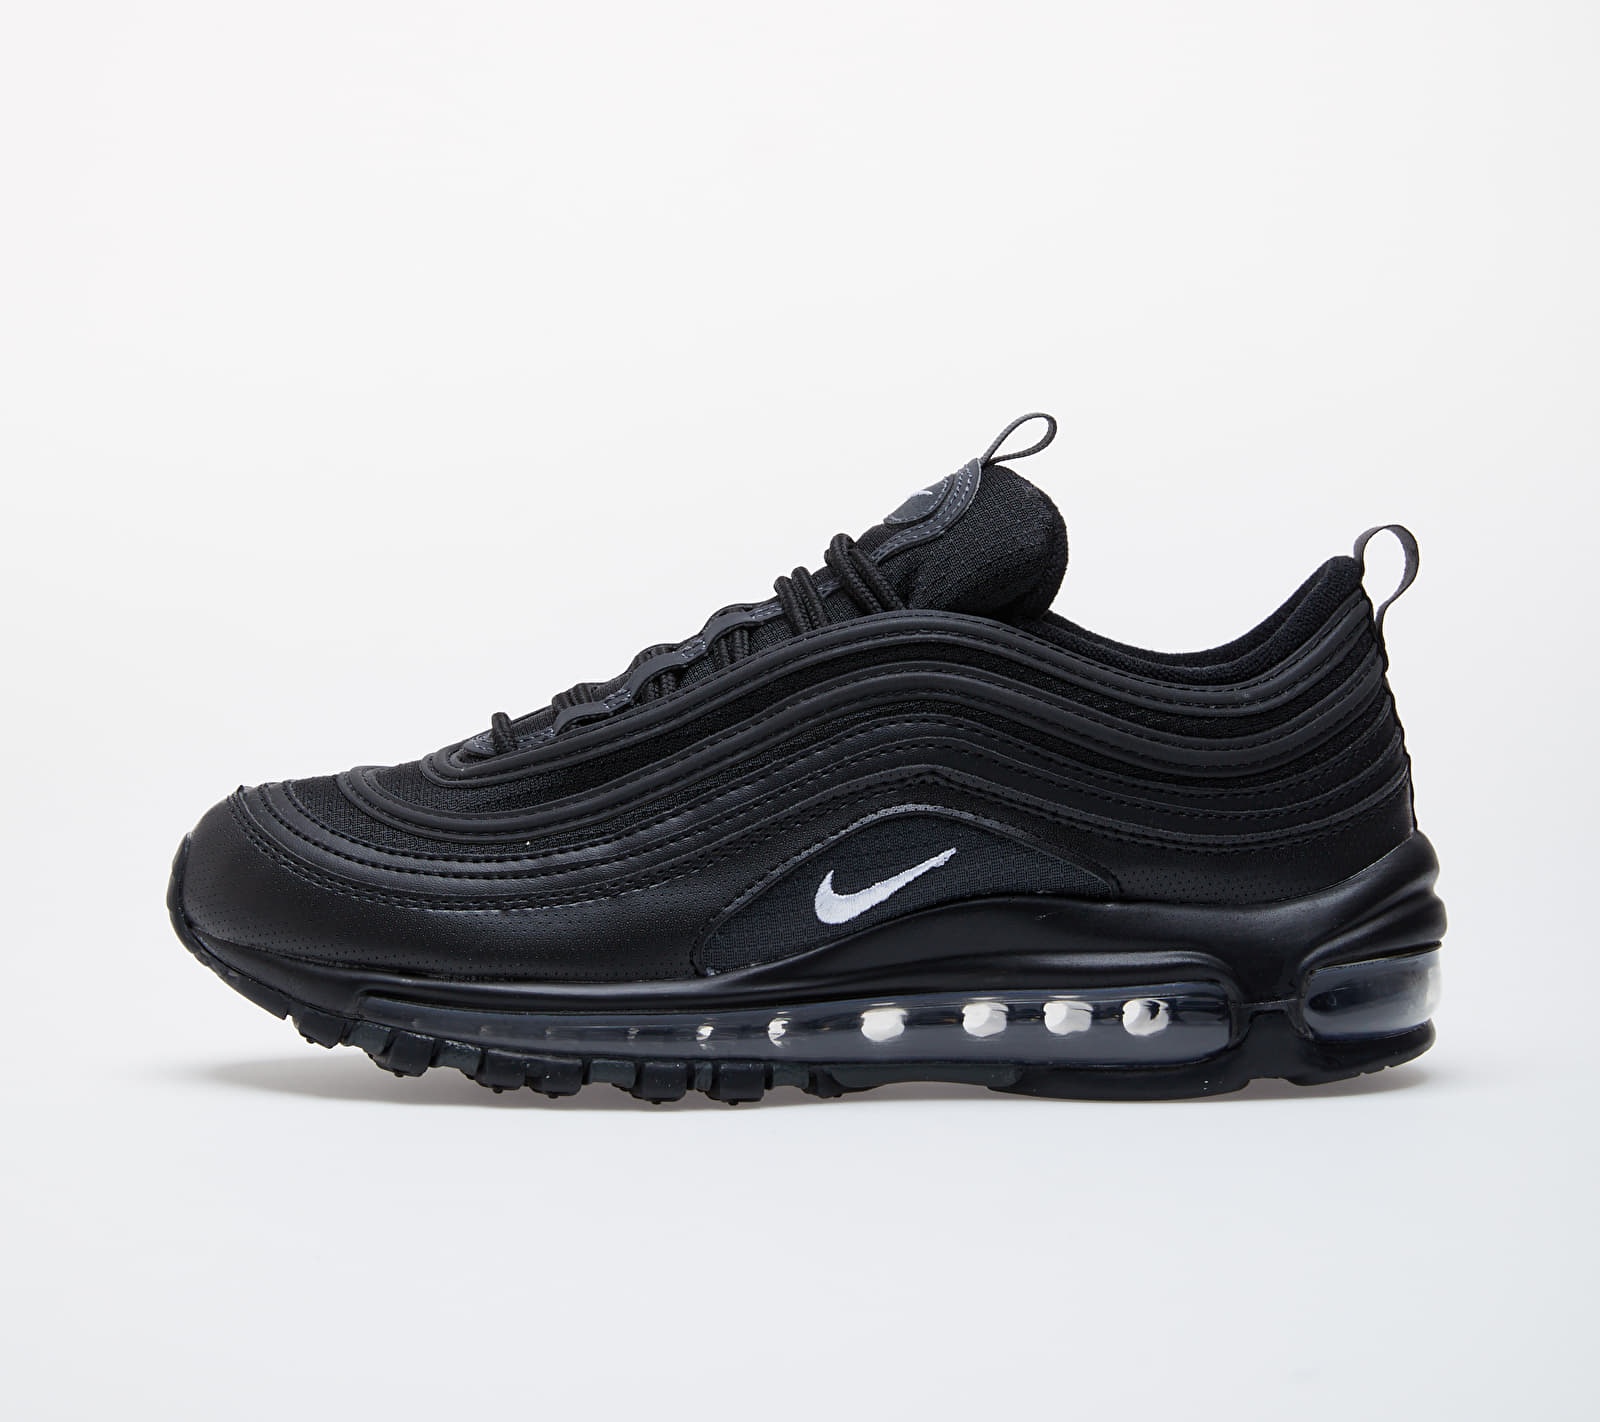 Nike Air Max 97 (GS) Black/ White-Anthracite EUR 36